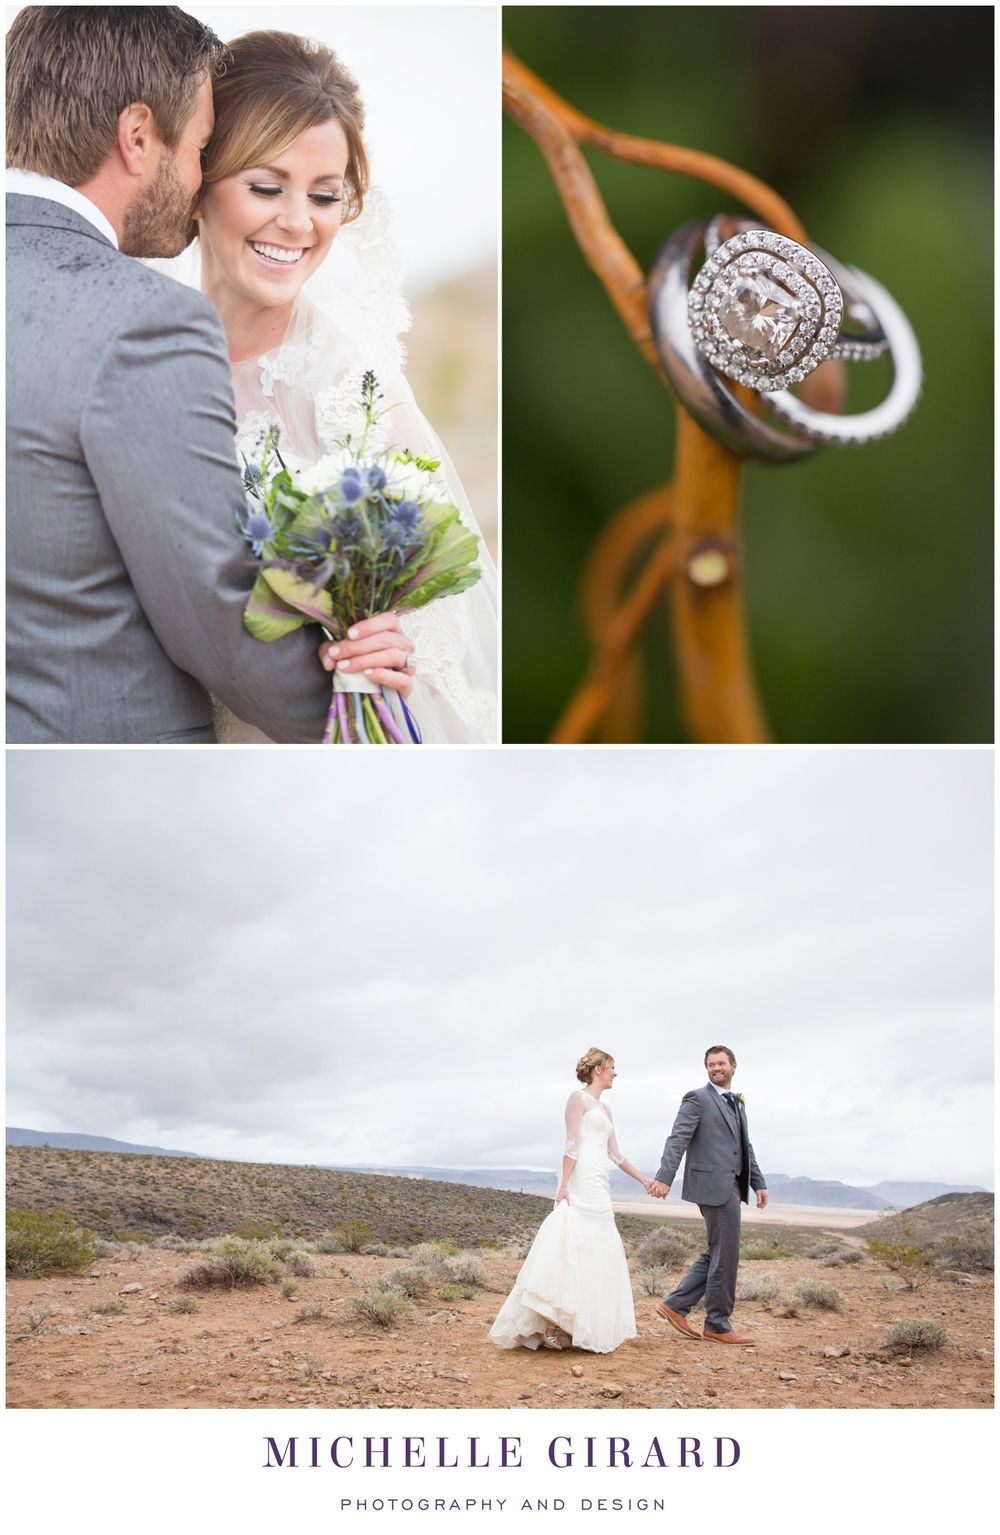 Halo Engagement Ring, Wedding Ring Shot :: Bride and Groom Romantic Portrait :: Cloudy Desert Day :: Classic Wedding Gown with Sheer Details and Cathedral Lace Veil :: Southwest Desert Wedding in Nevada outside of Las Vegas :: Michelle Girard Photography and Design